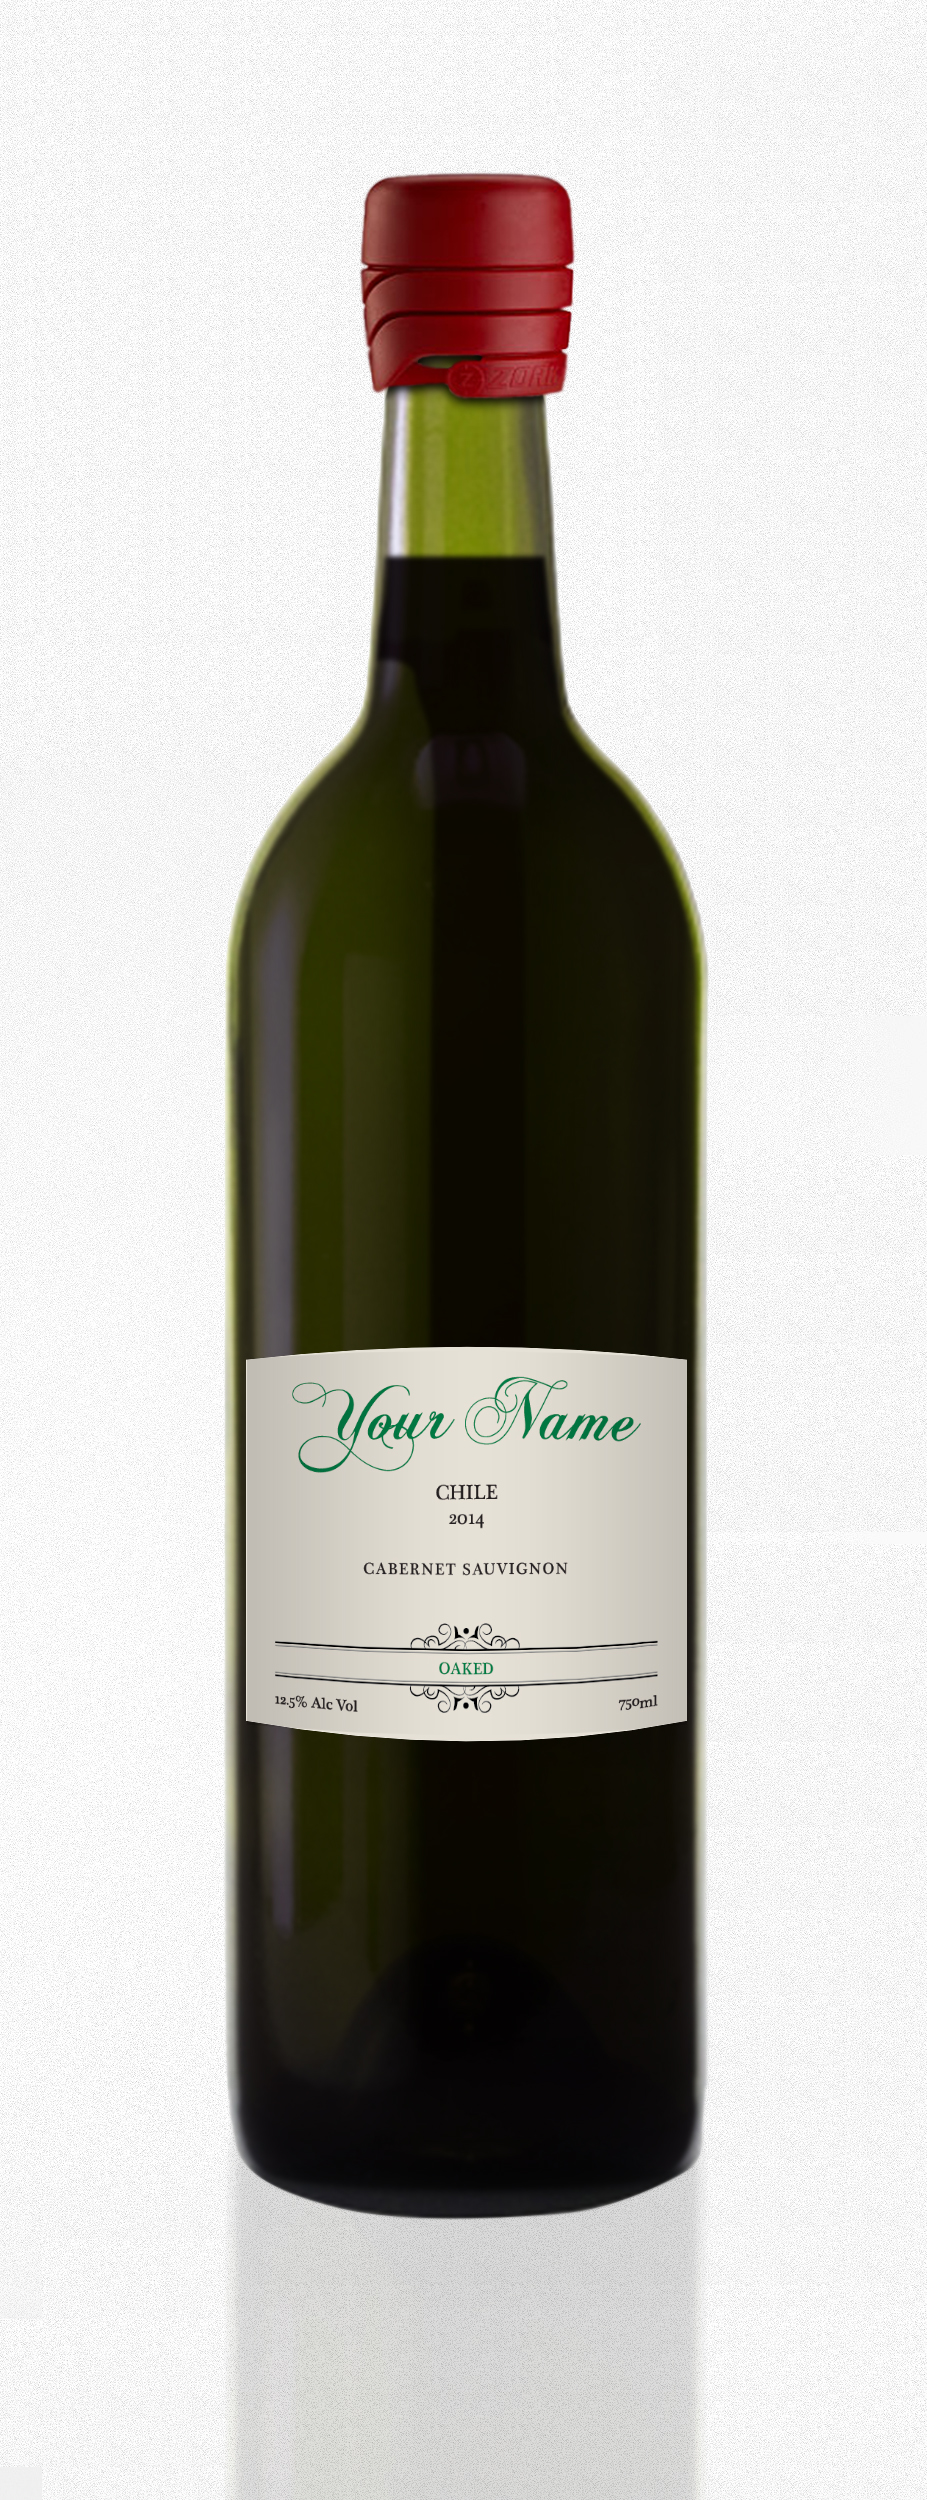 Chile_Yourname_bottle_front_label.jpg